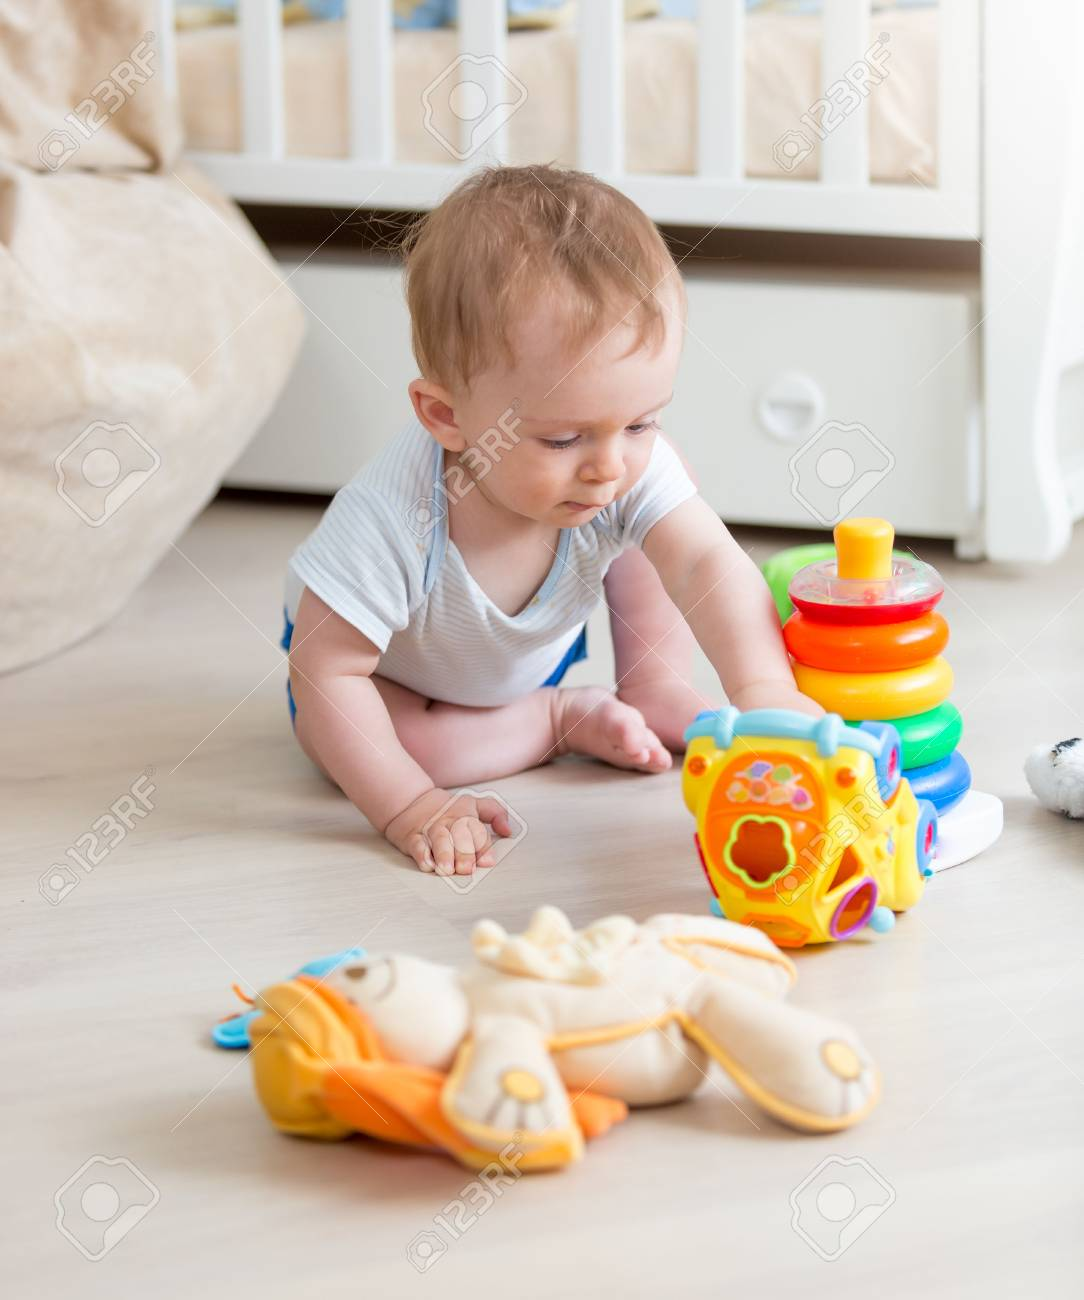 Cute 9 Months Old Baby Boy Playing With Colorful Toys On Floor - 9-month-old-baby-toys